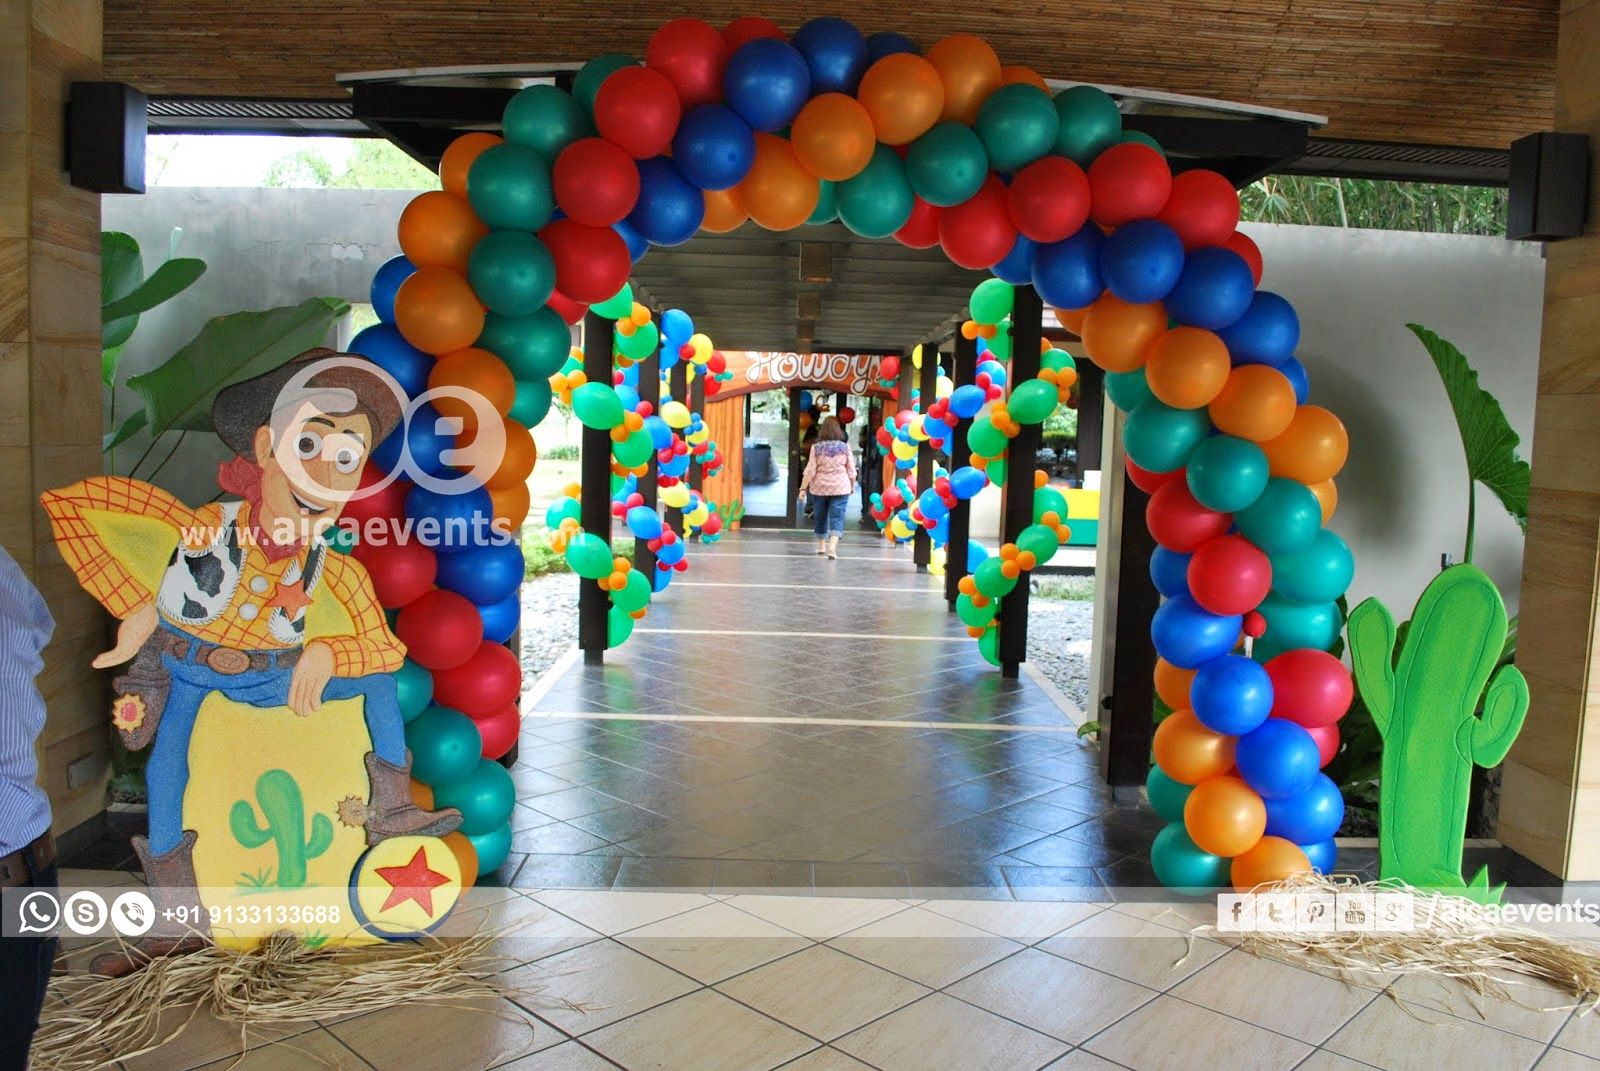 aicaevents: Toy story Theme Birthday party decorations